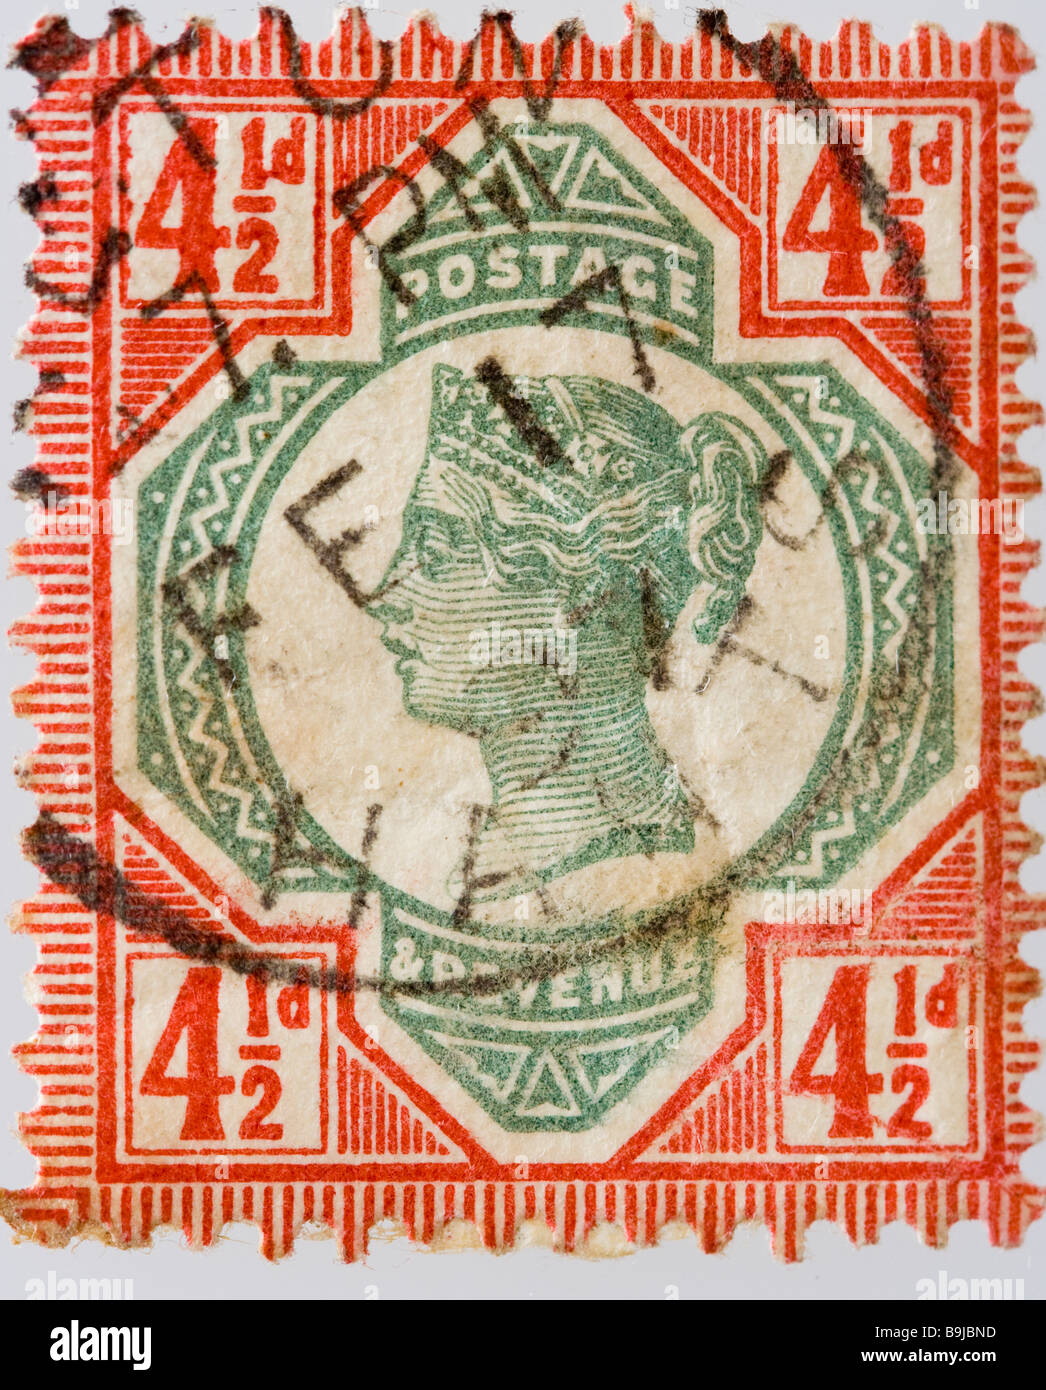 British Victorian four and half pence postage stamp 1887-1900 SG 206, bright red and green, franked, used - Stock Image